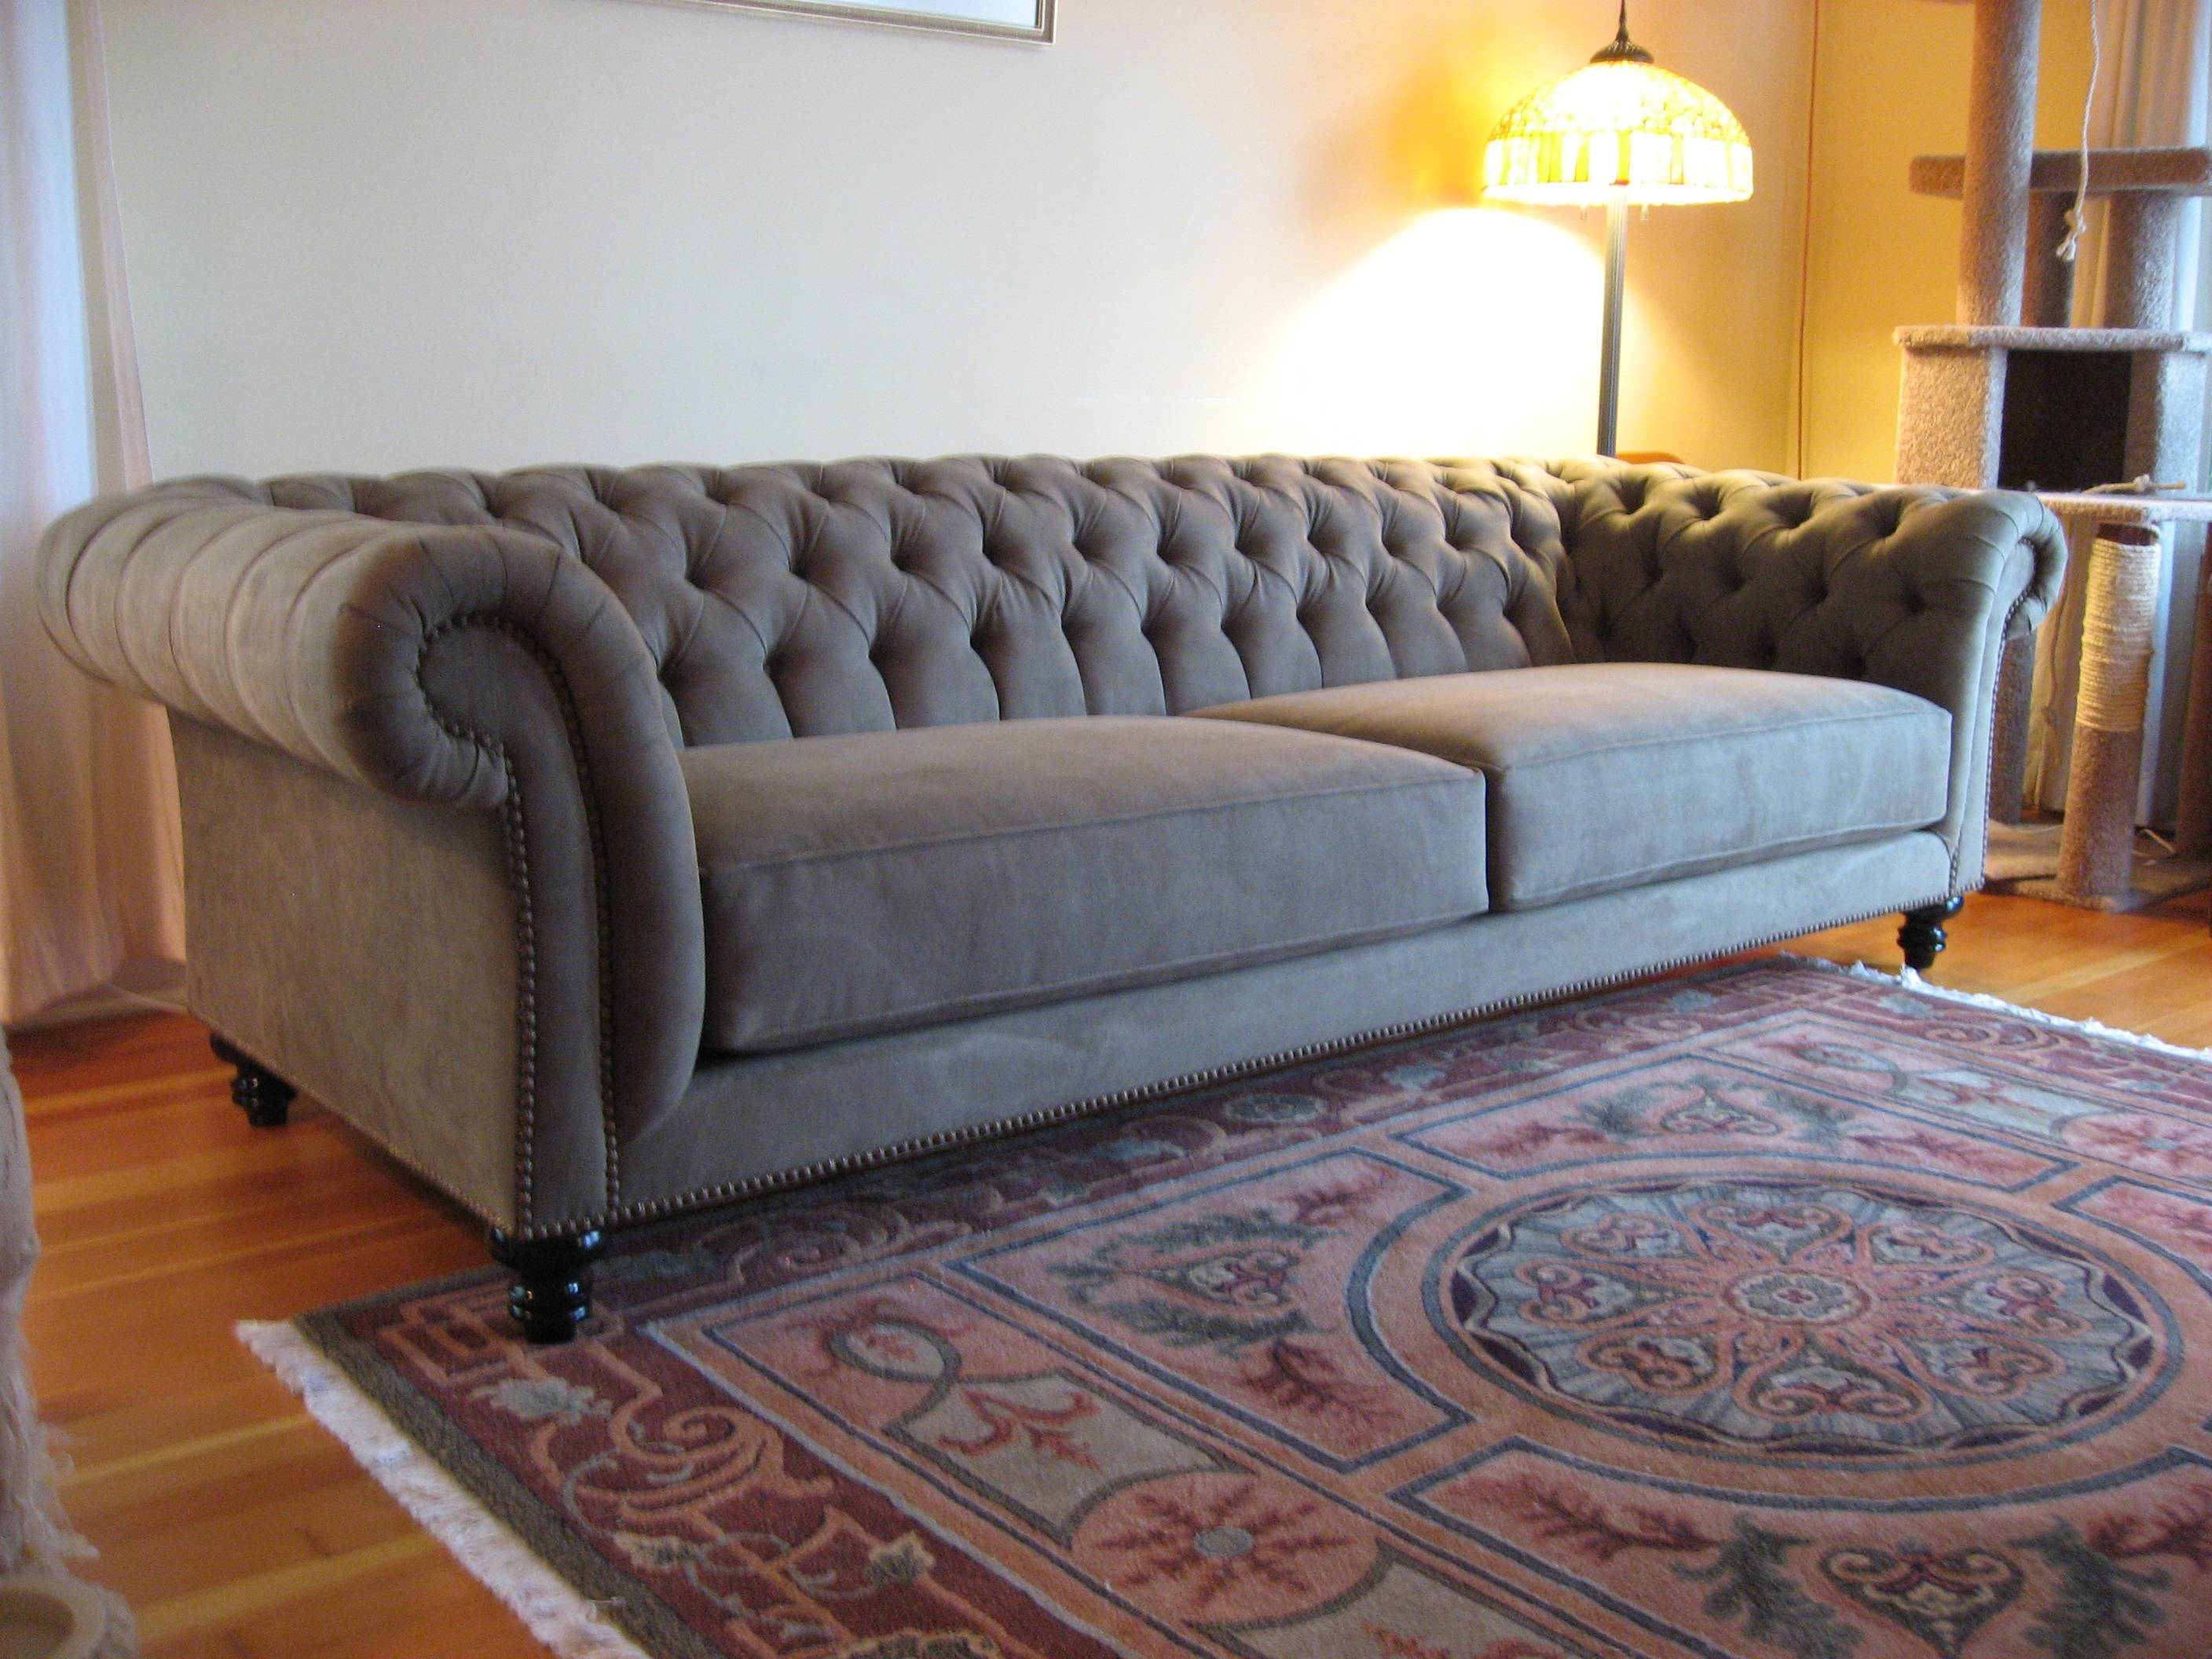 Tufted Chesterfield Sofa | Best Sofas Ideas – Sofascouch Throughout Chesterfield Recliners (View 27 of 30)